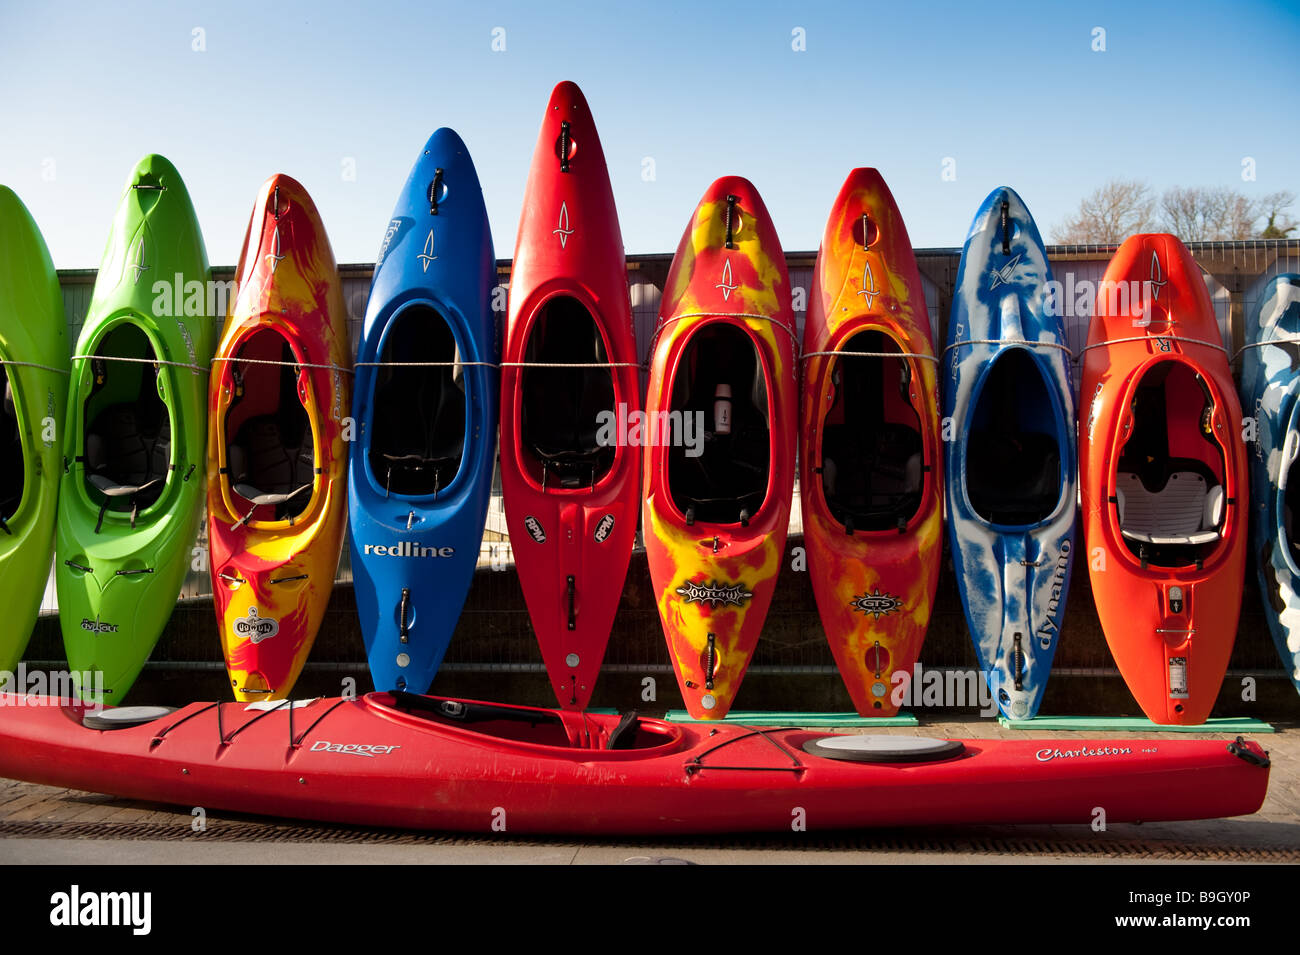 Row of colourful kayaks and canoes for sale Cardigan Town Ceredigion West Wales UK - Stock Image